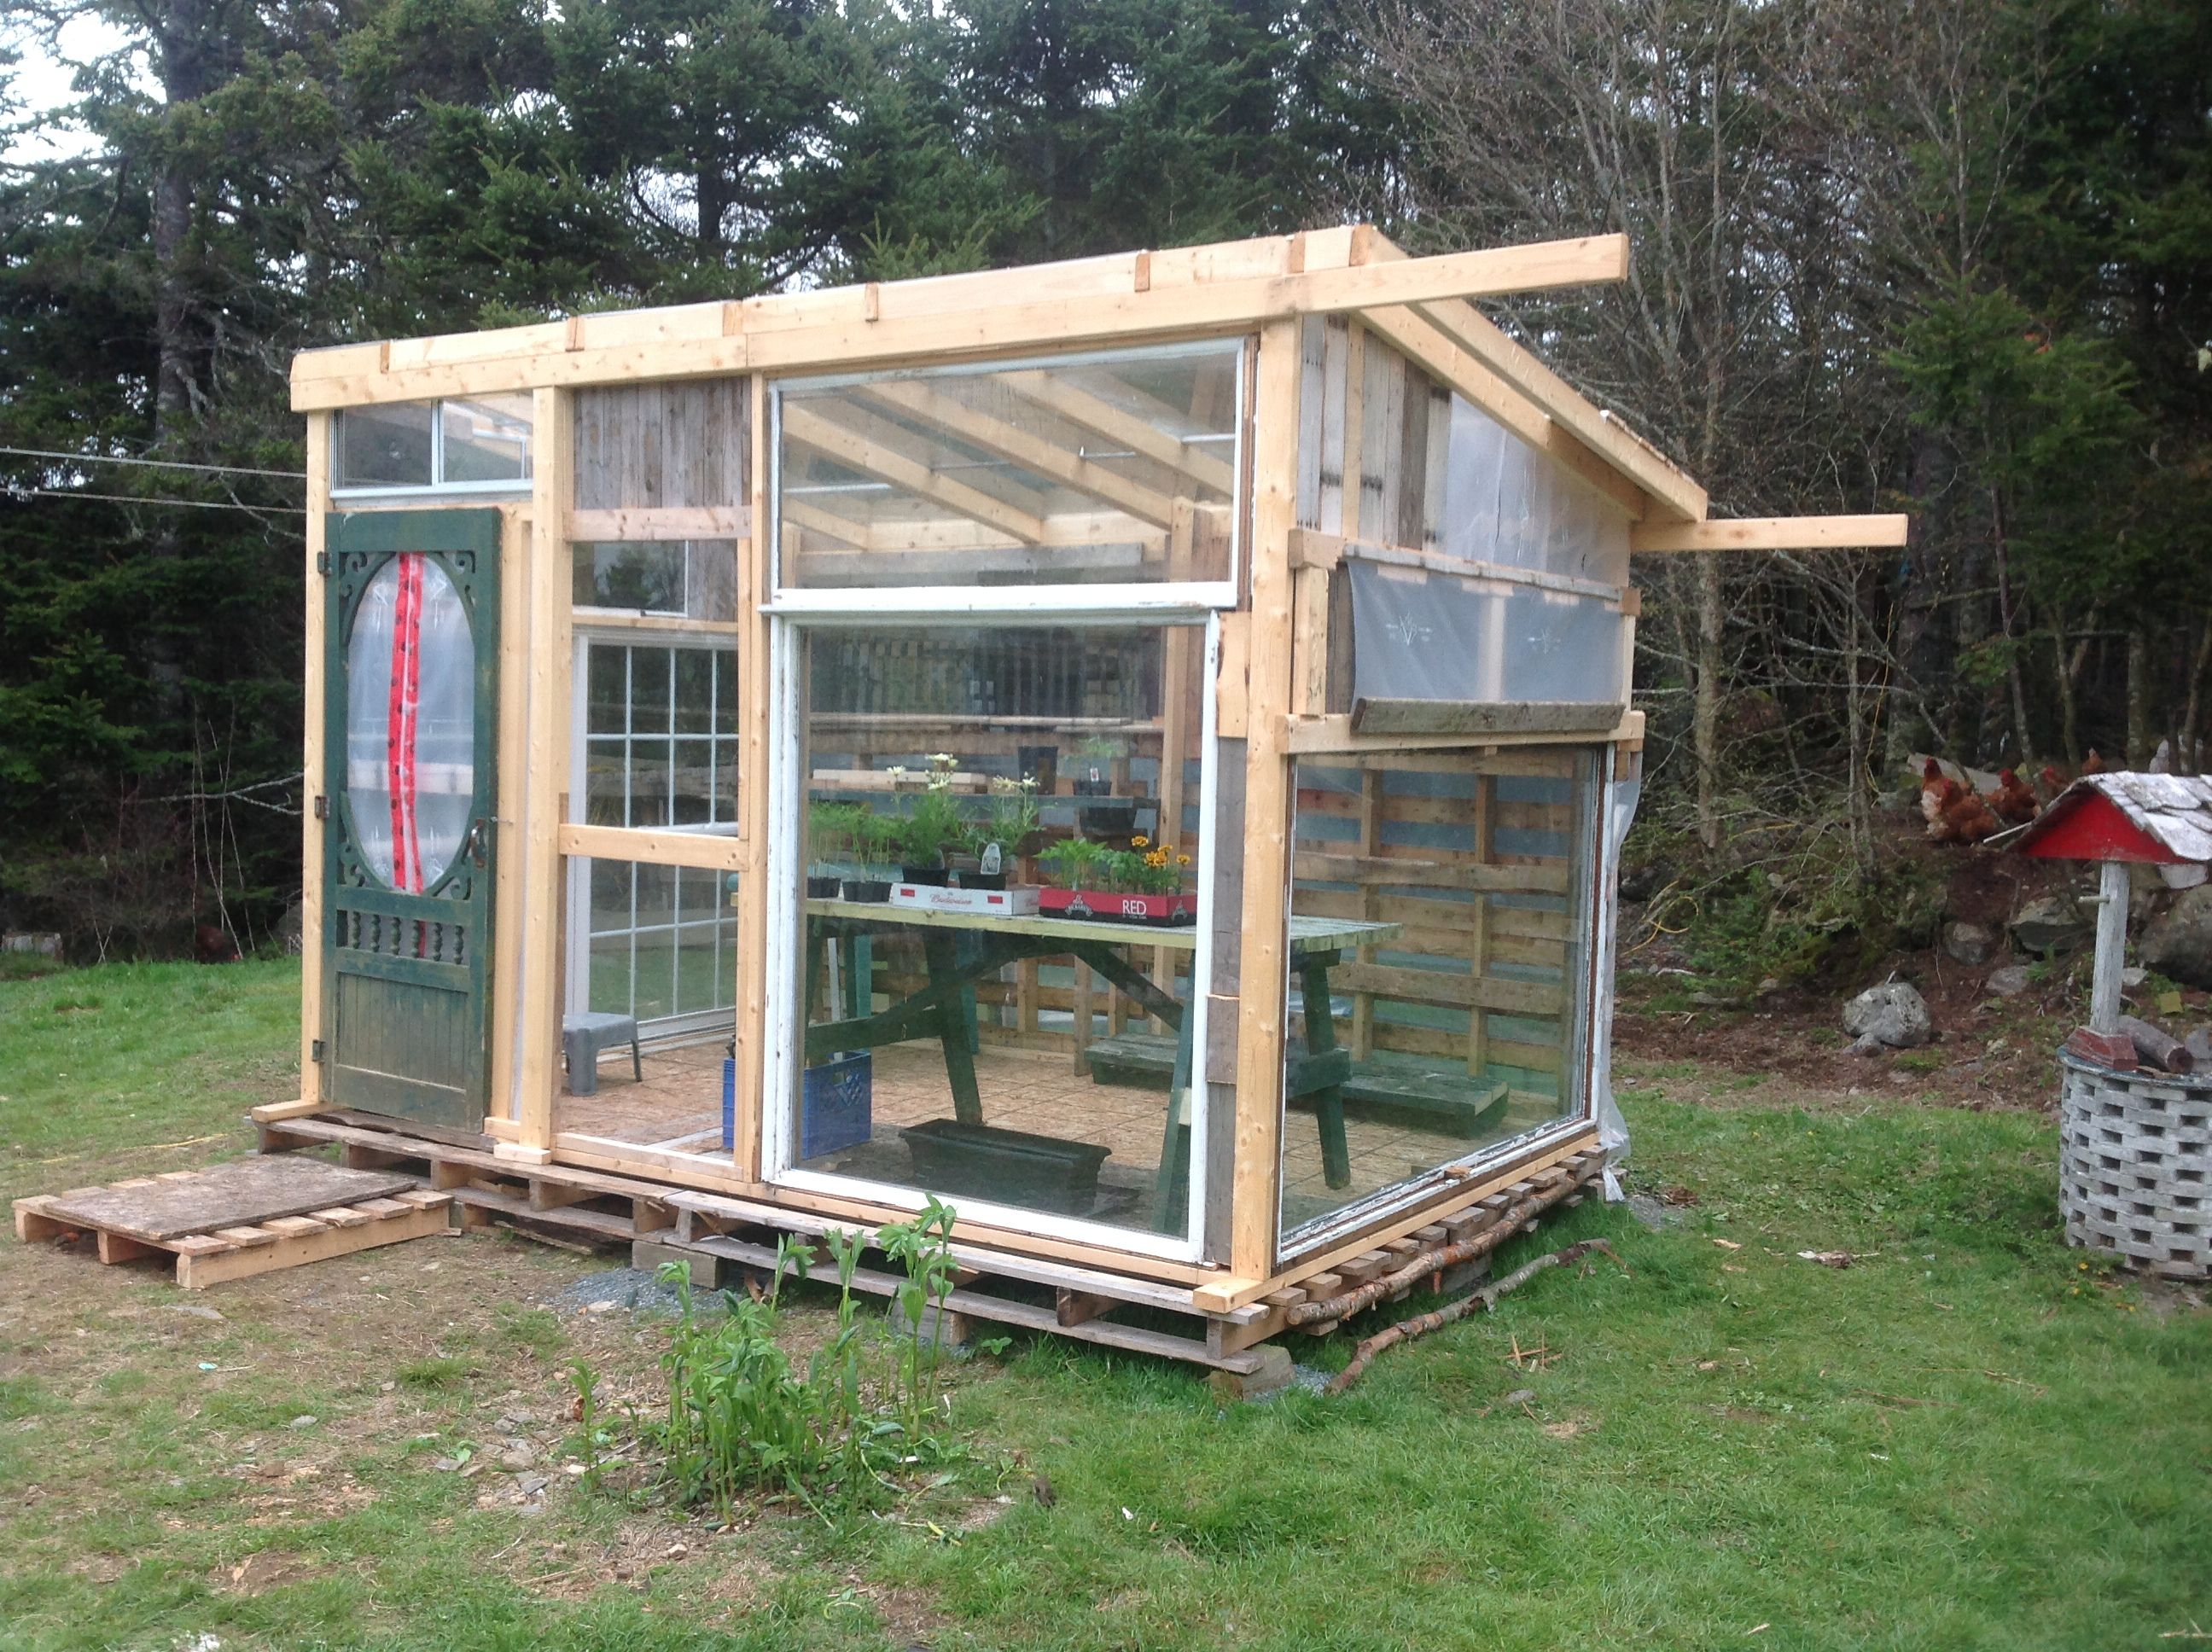 Diy Garden Window Plans Image Result For Greenhouse From Pallets And Old Windows